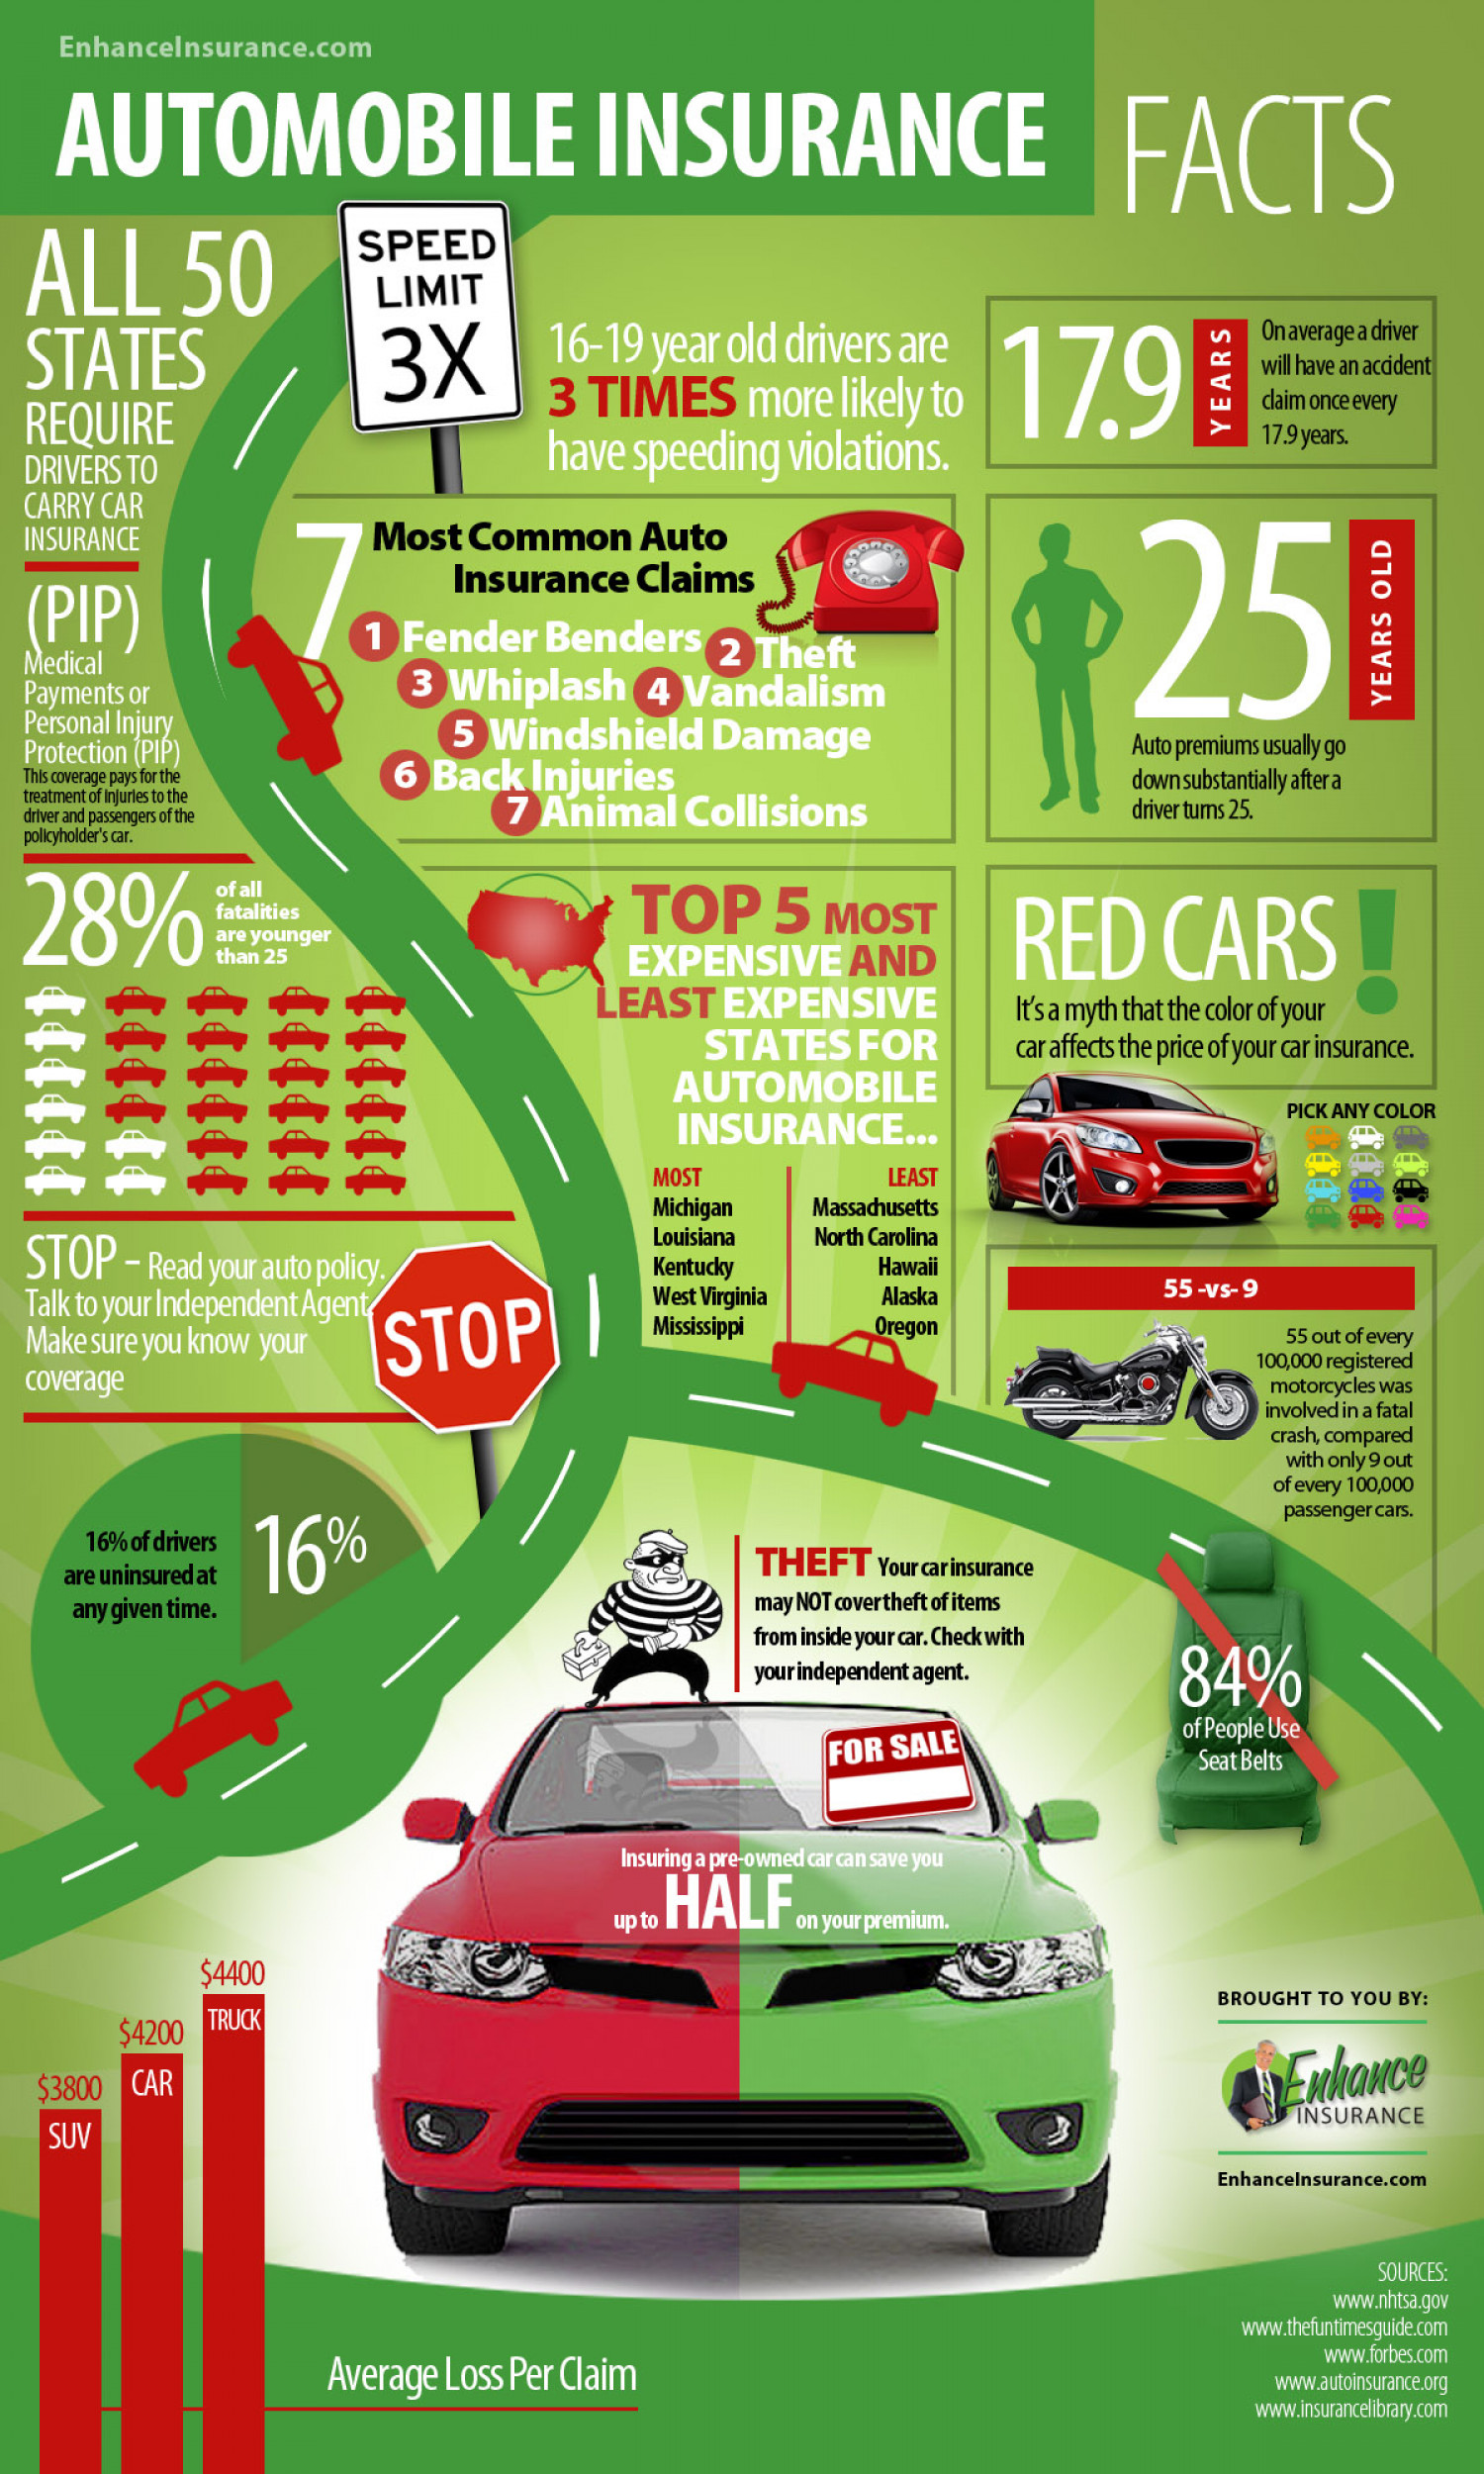 Auto Insurance Facts and Interesting Statistics Infographic